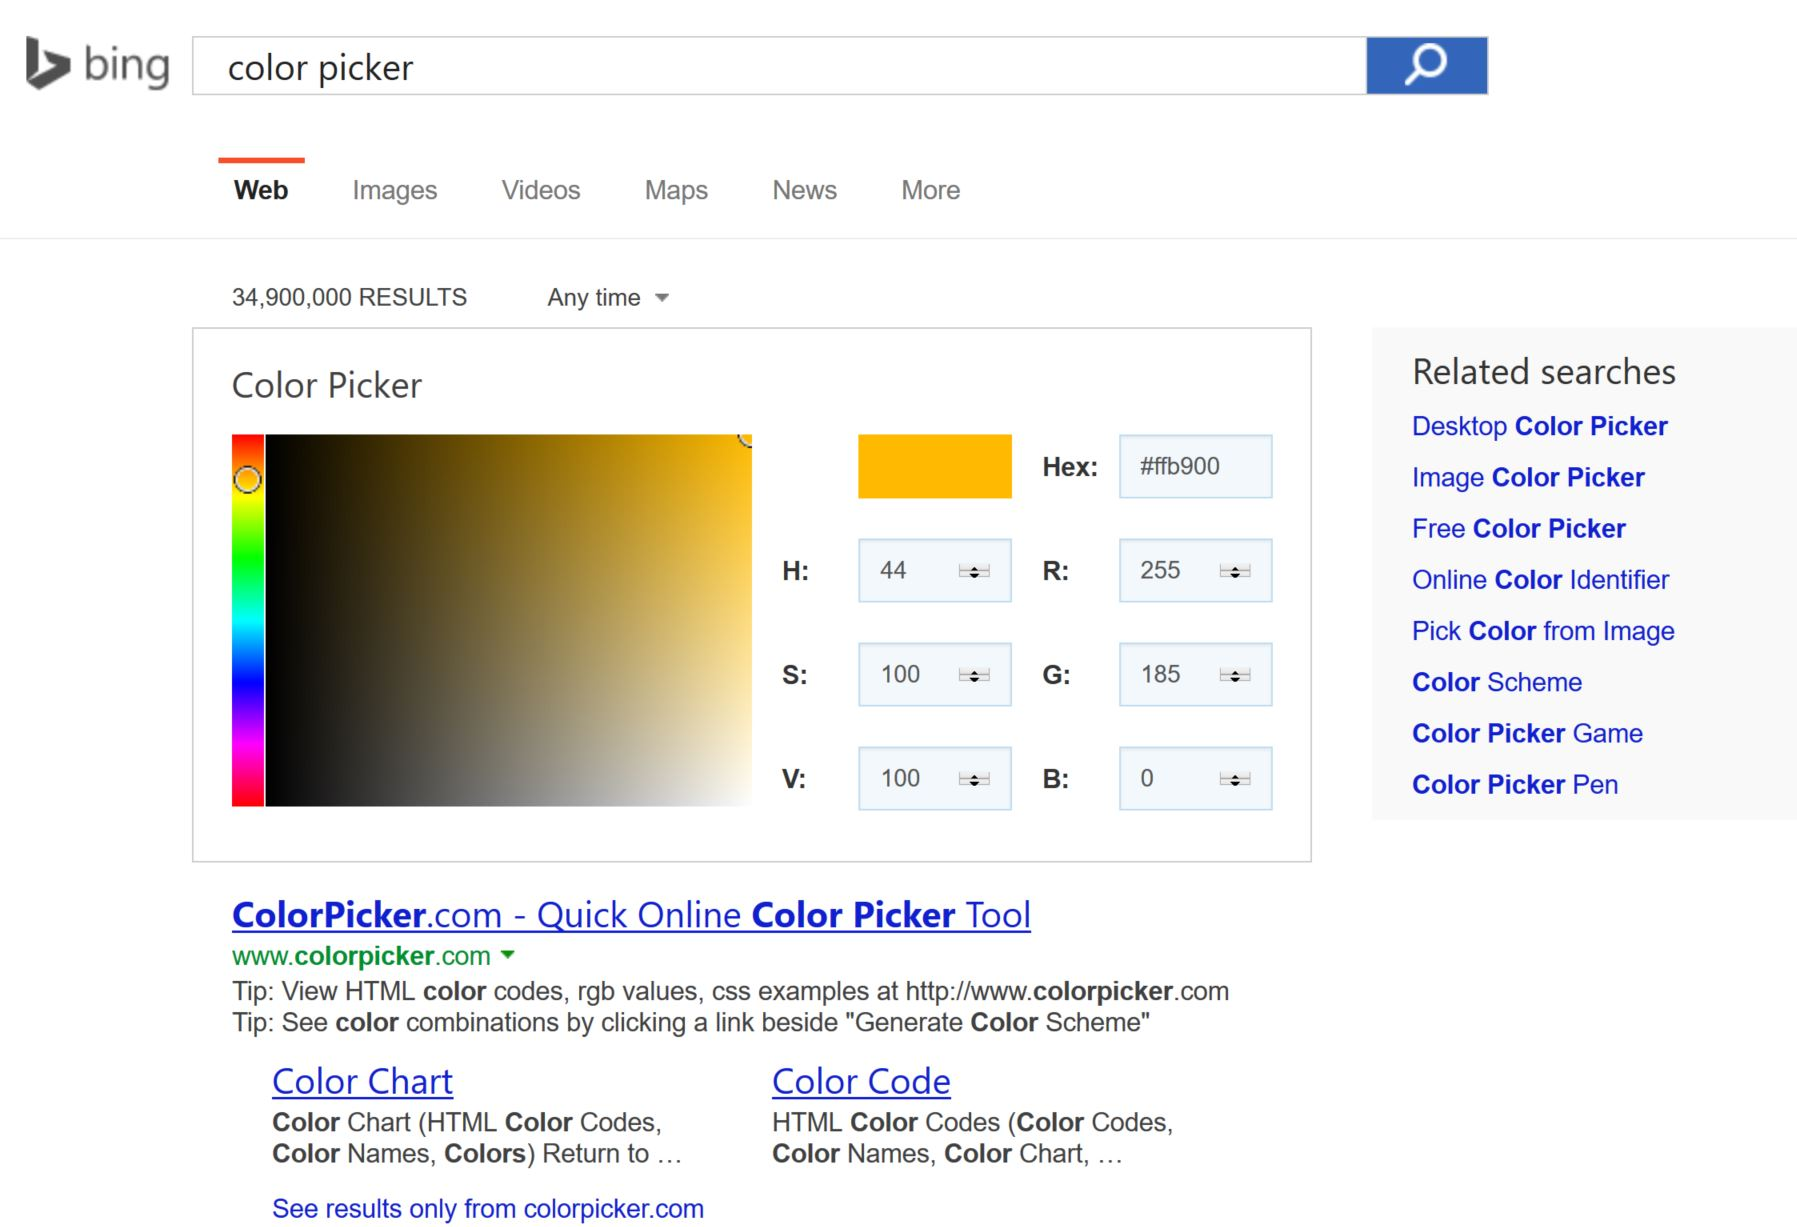 Game color chart - Bing Color Picker